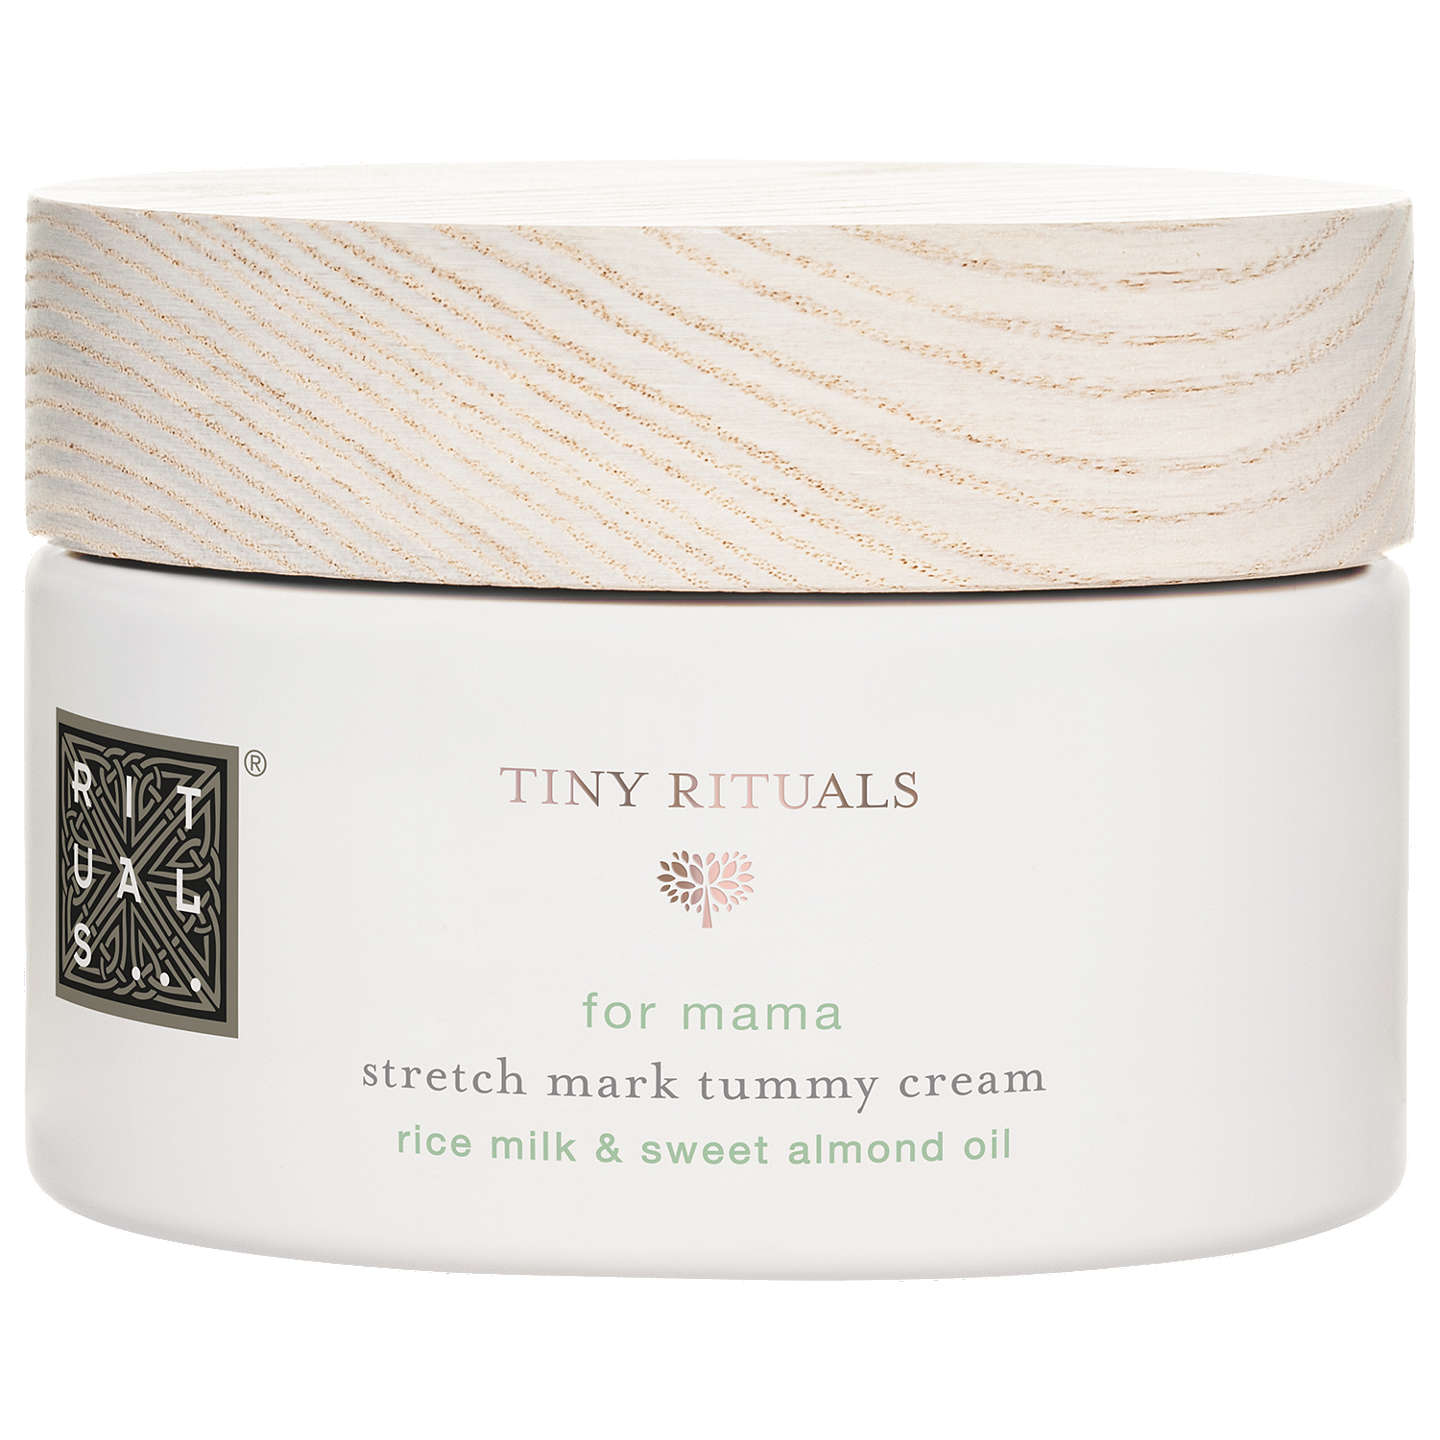 BuyRituals Stretch Mark Tummy Cream, 200ml Online at johnlewis.com